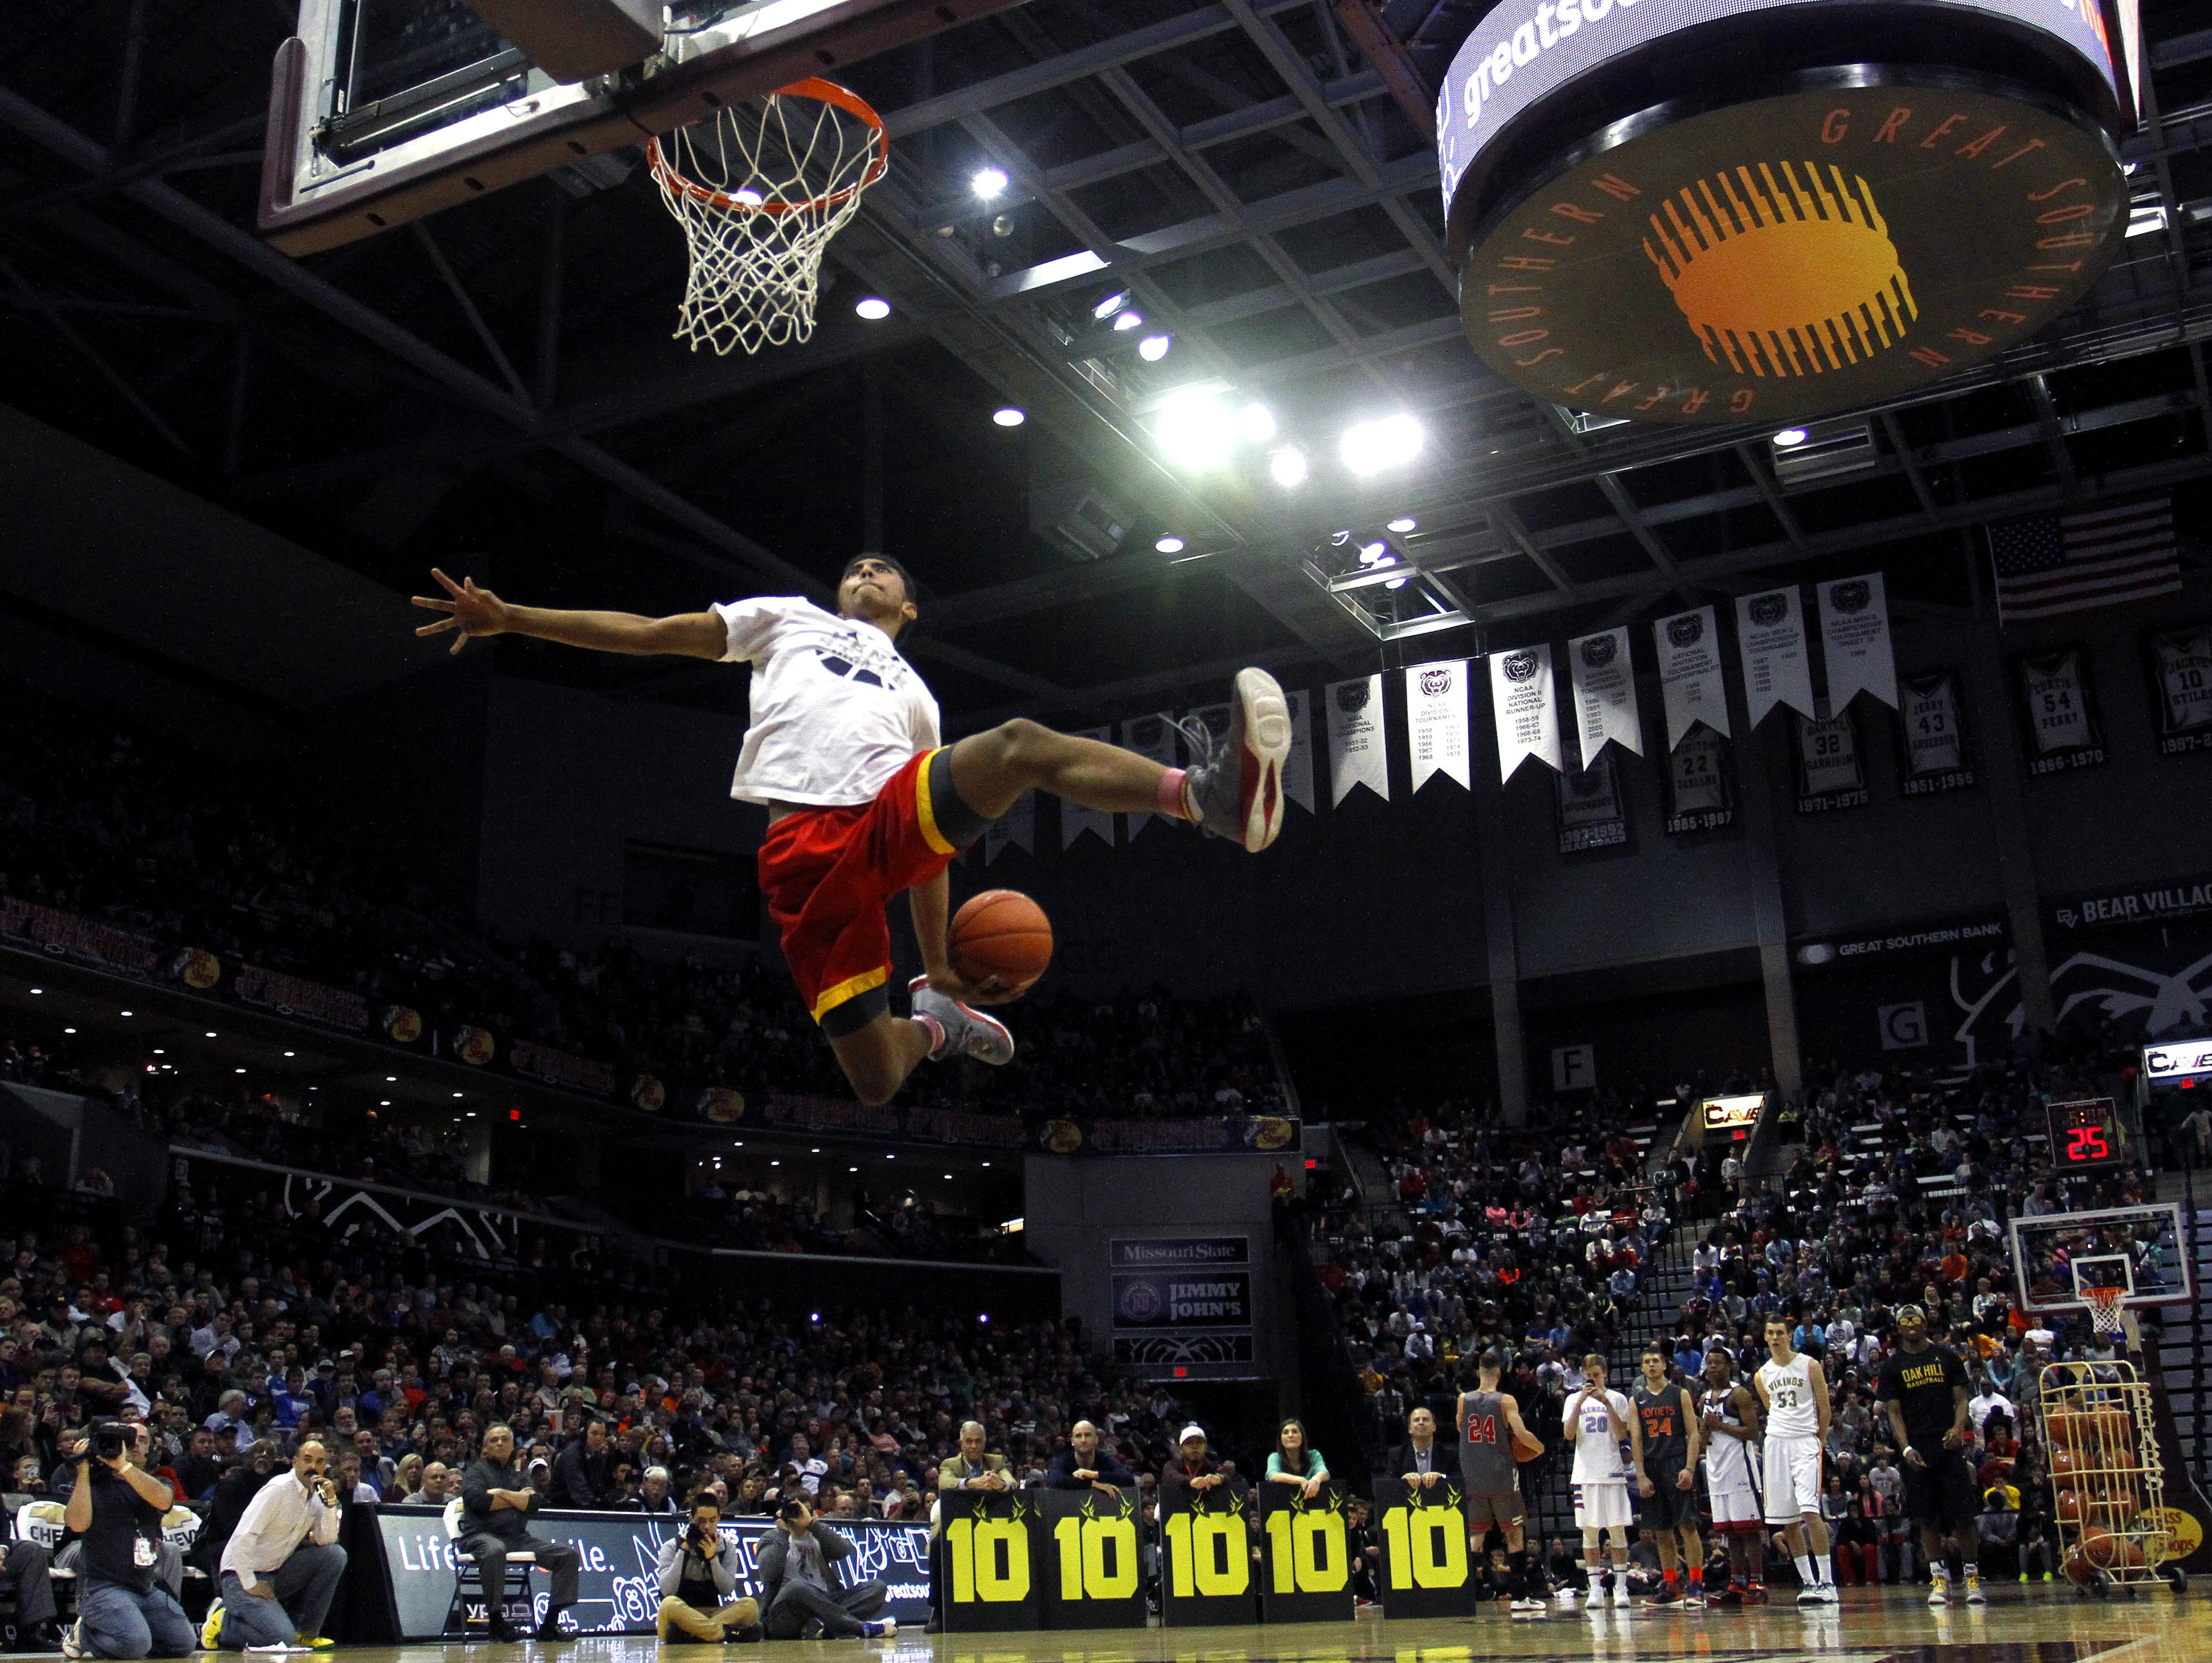 The 2016 Bass Pro Tournament of Champions will feature a dunk contest before the championship game for the second consecutive year.